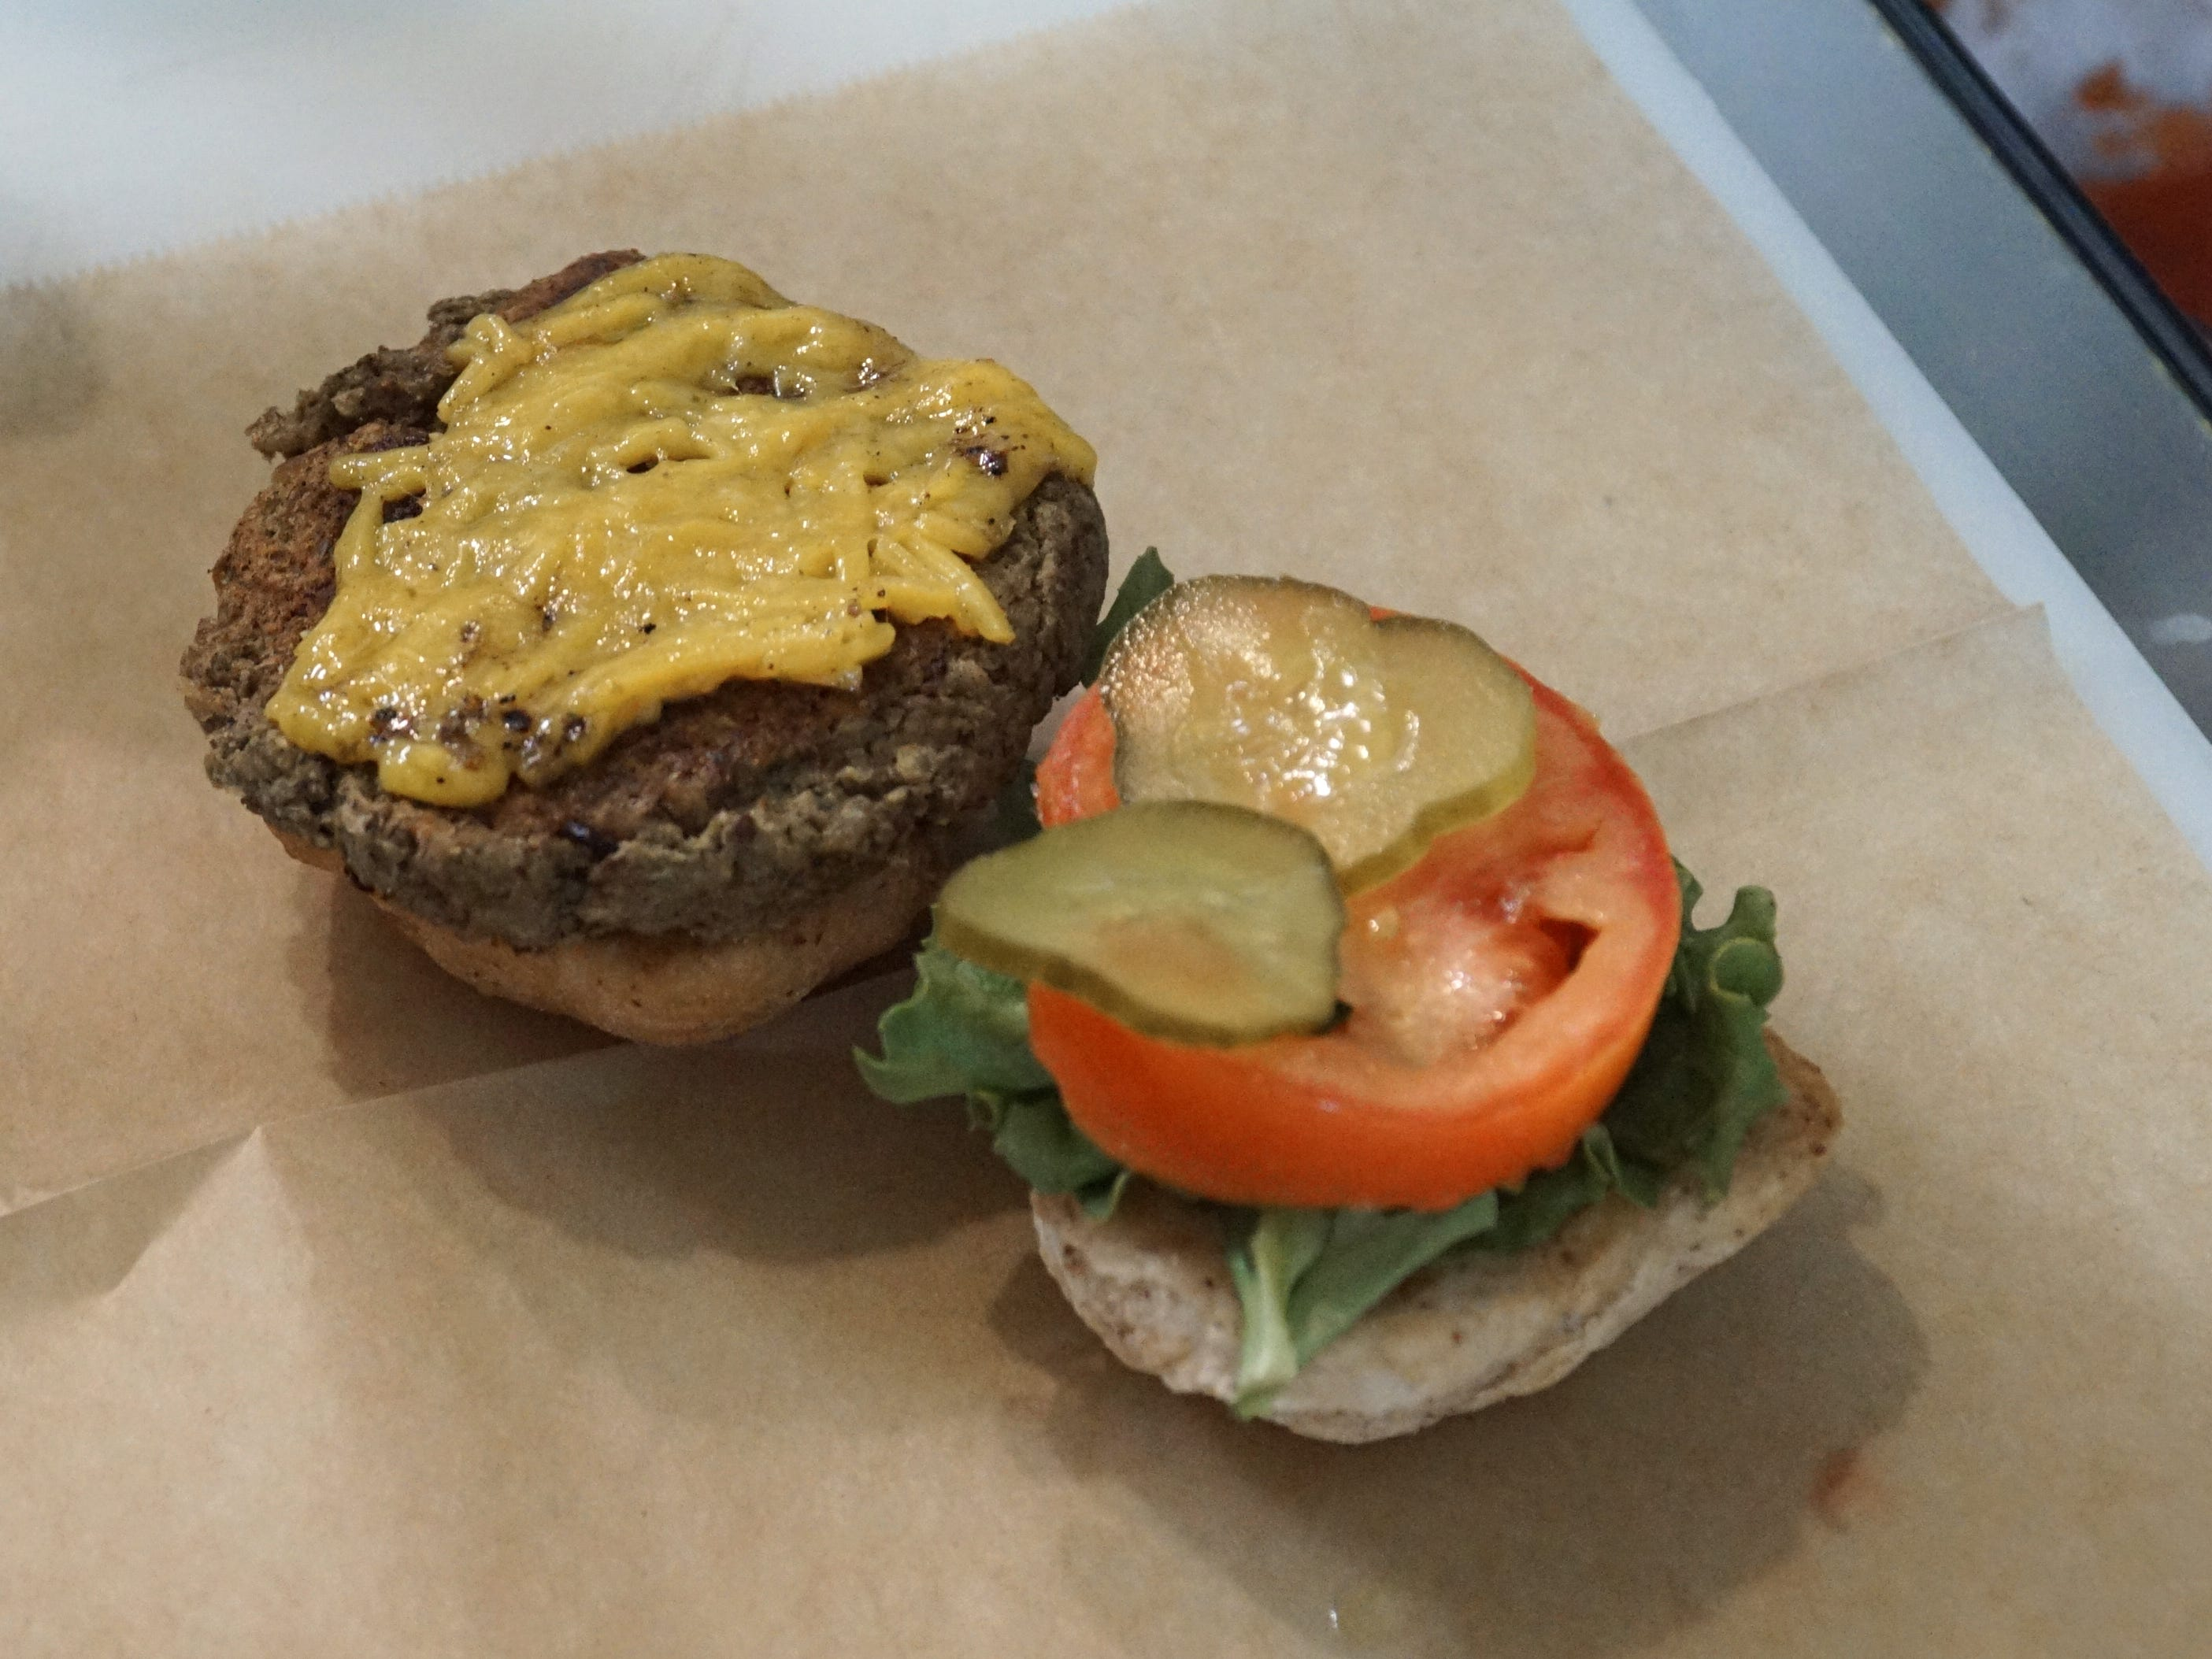 A classic Shimmy Shack vegan burger just off the grill.